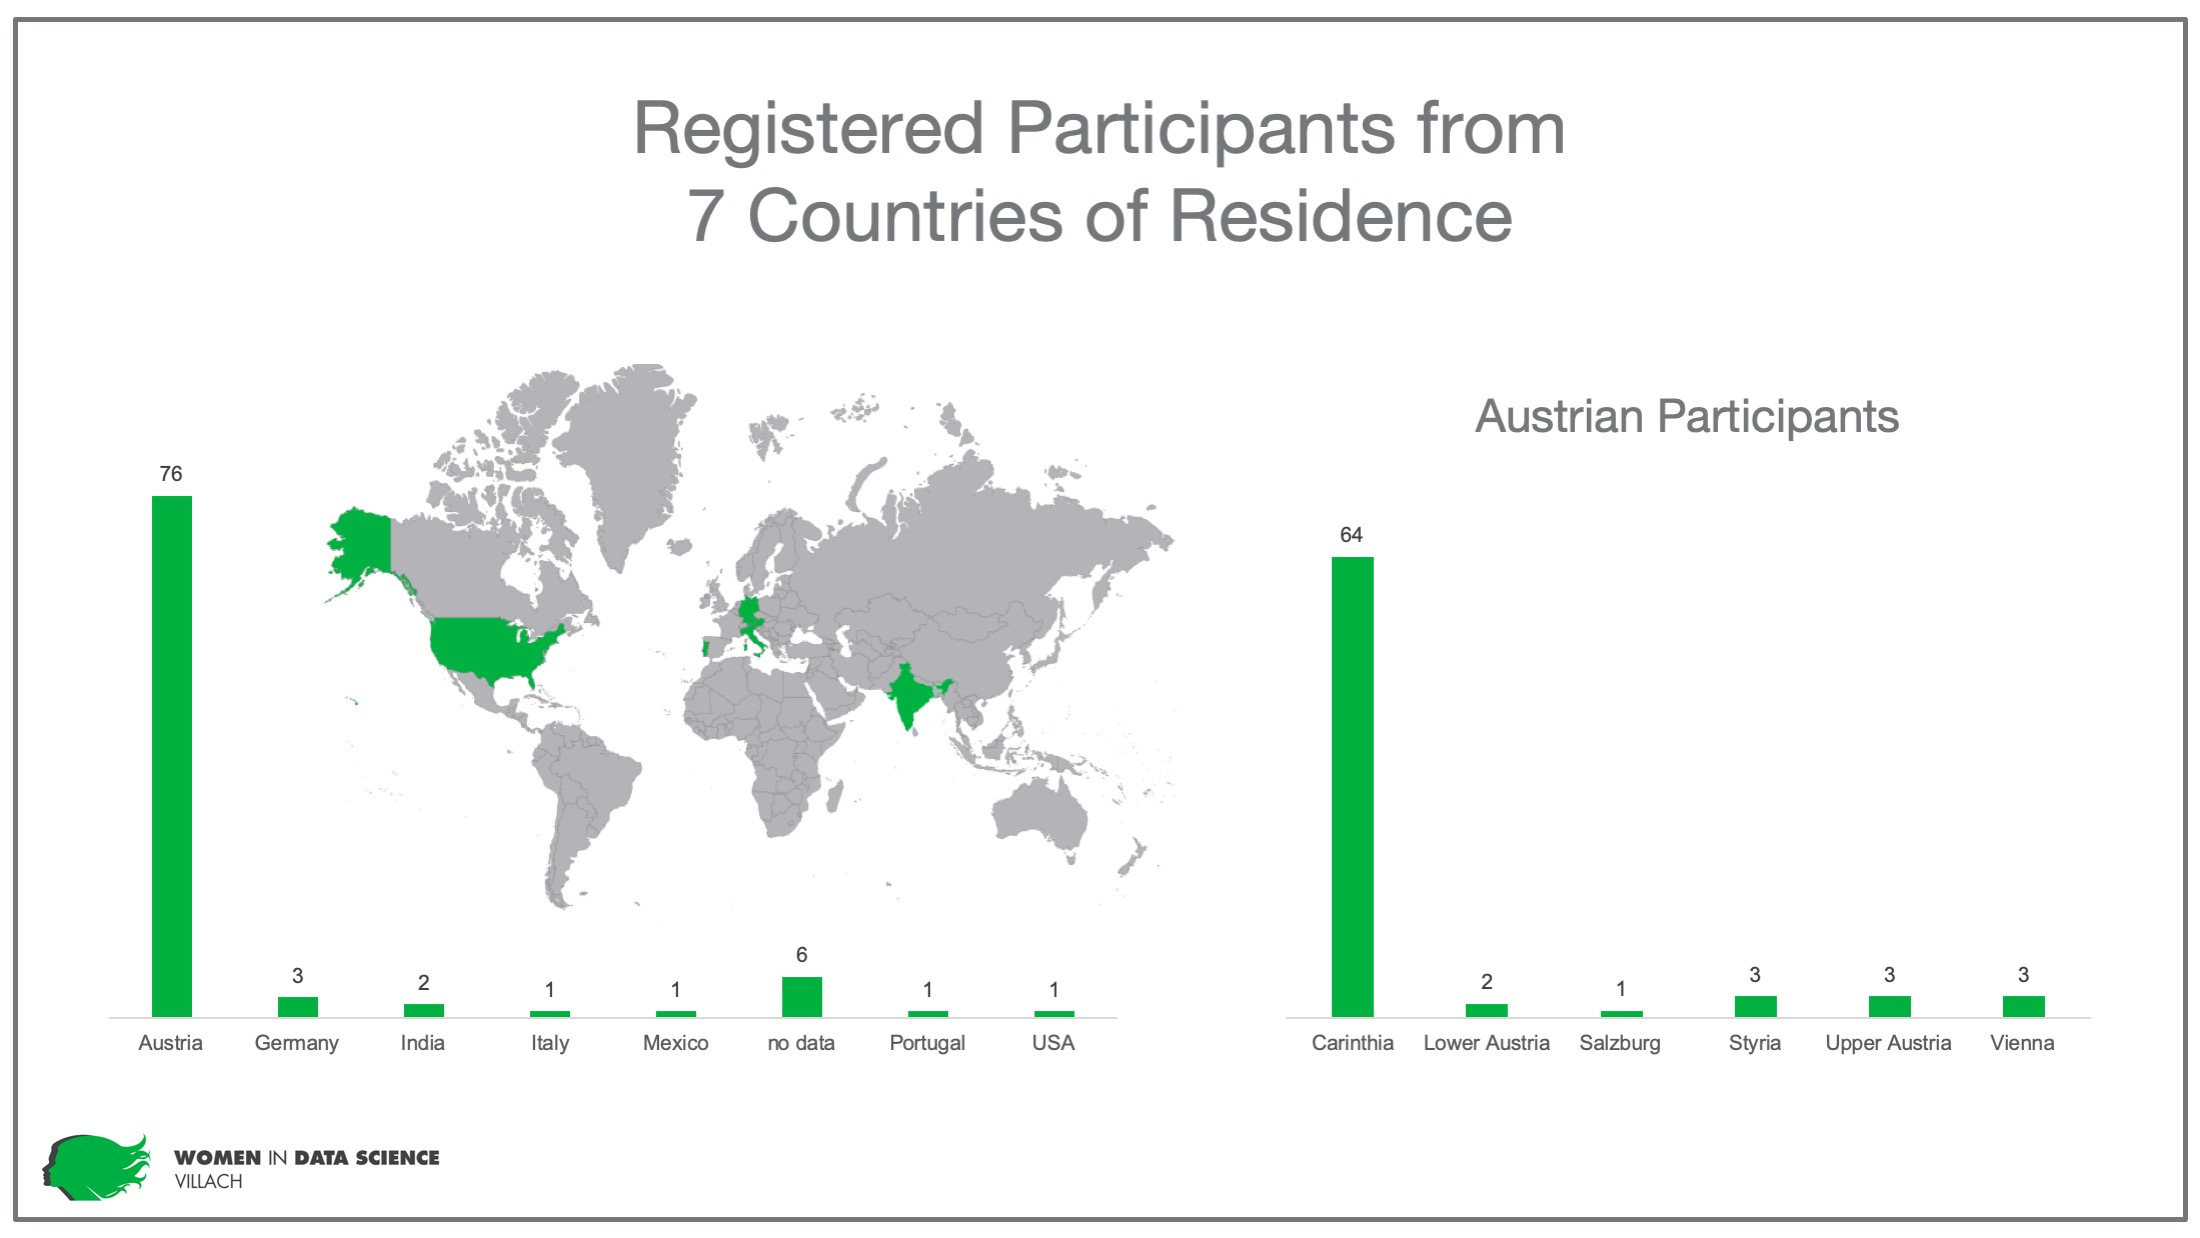 Women in Data Science Carinthia - participants countries of residents